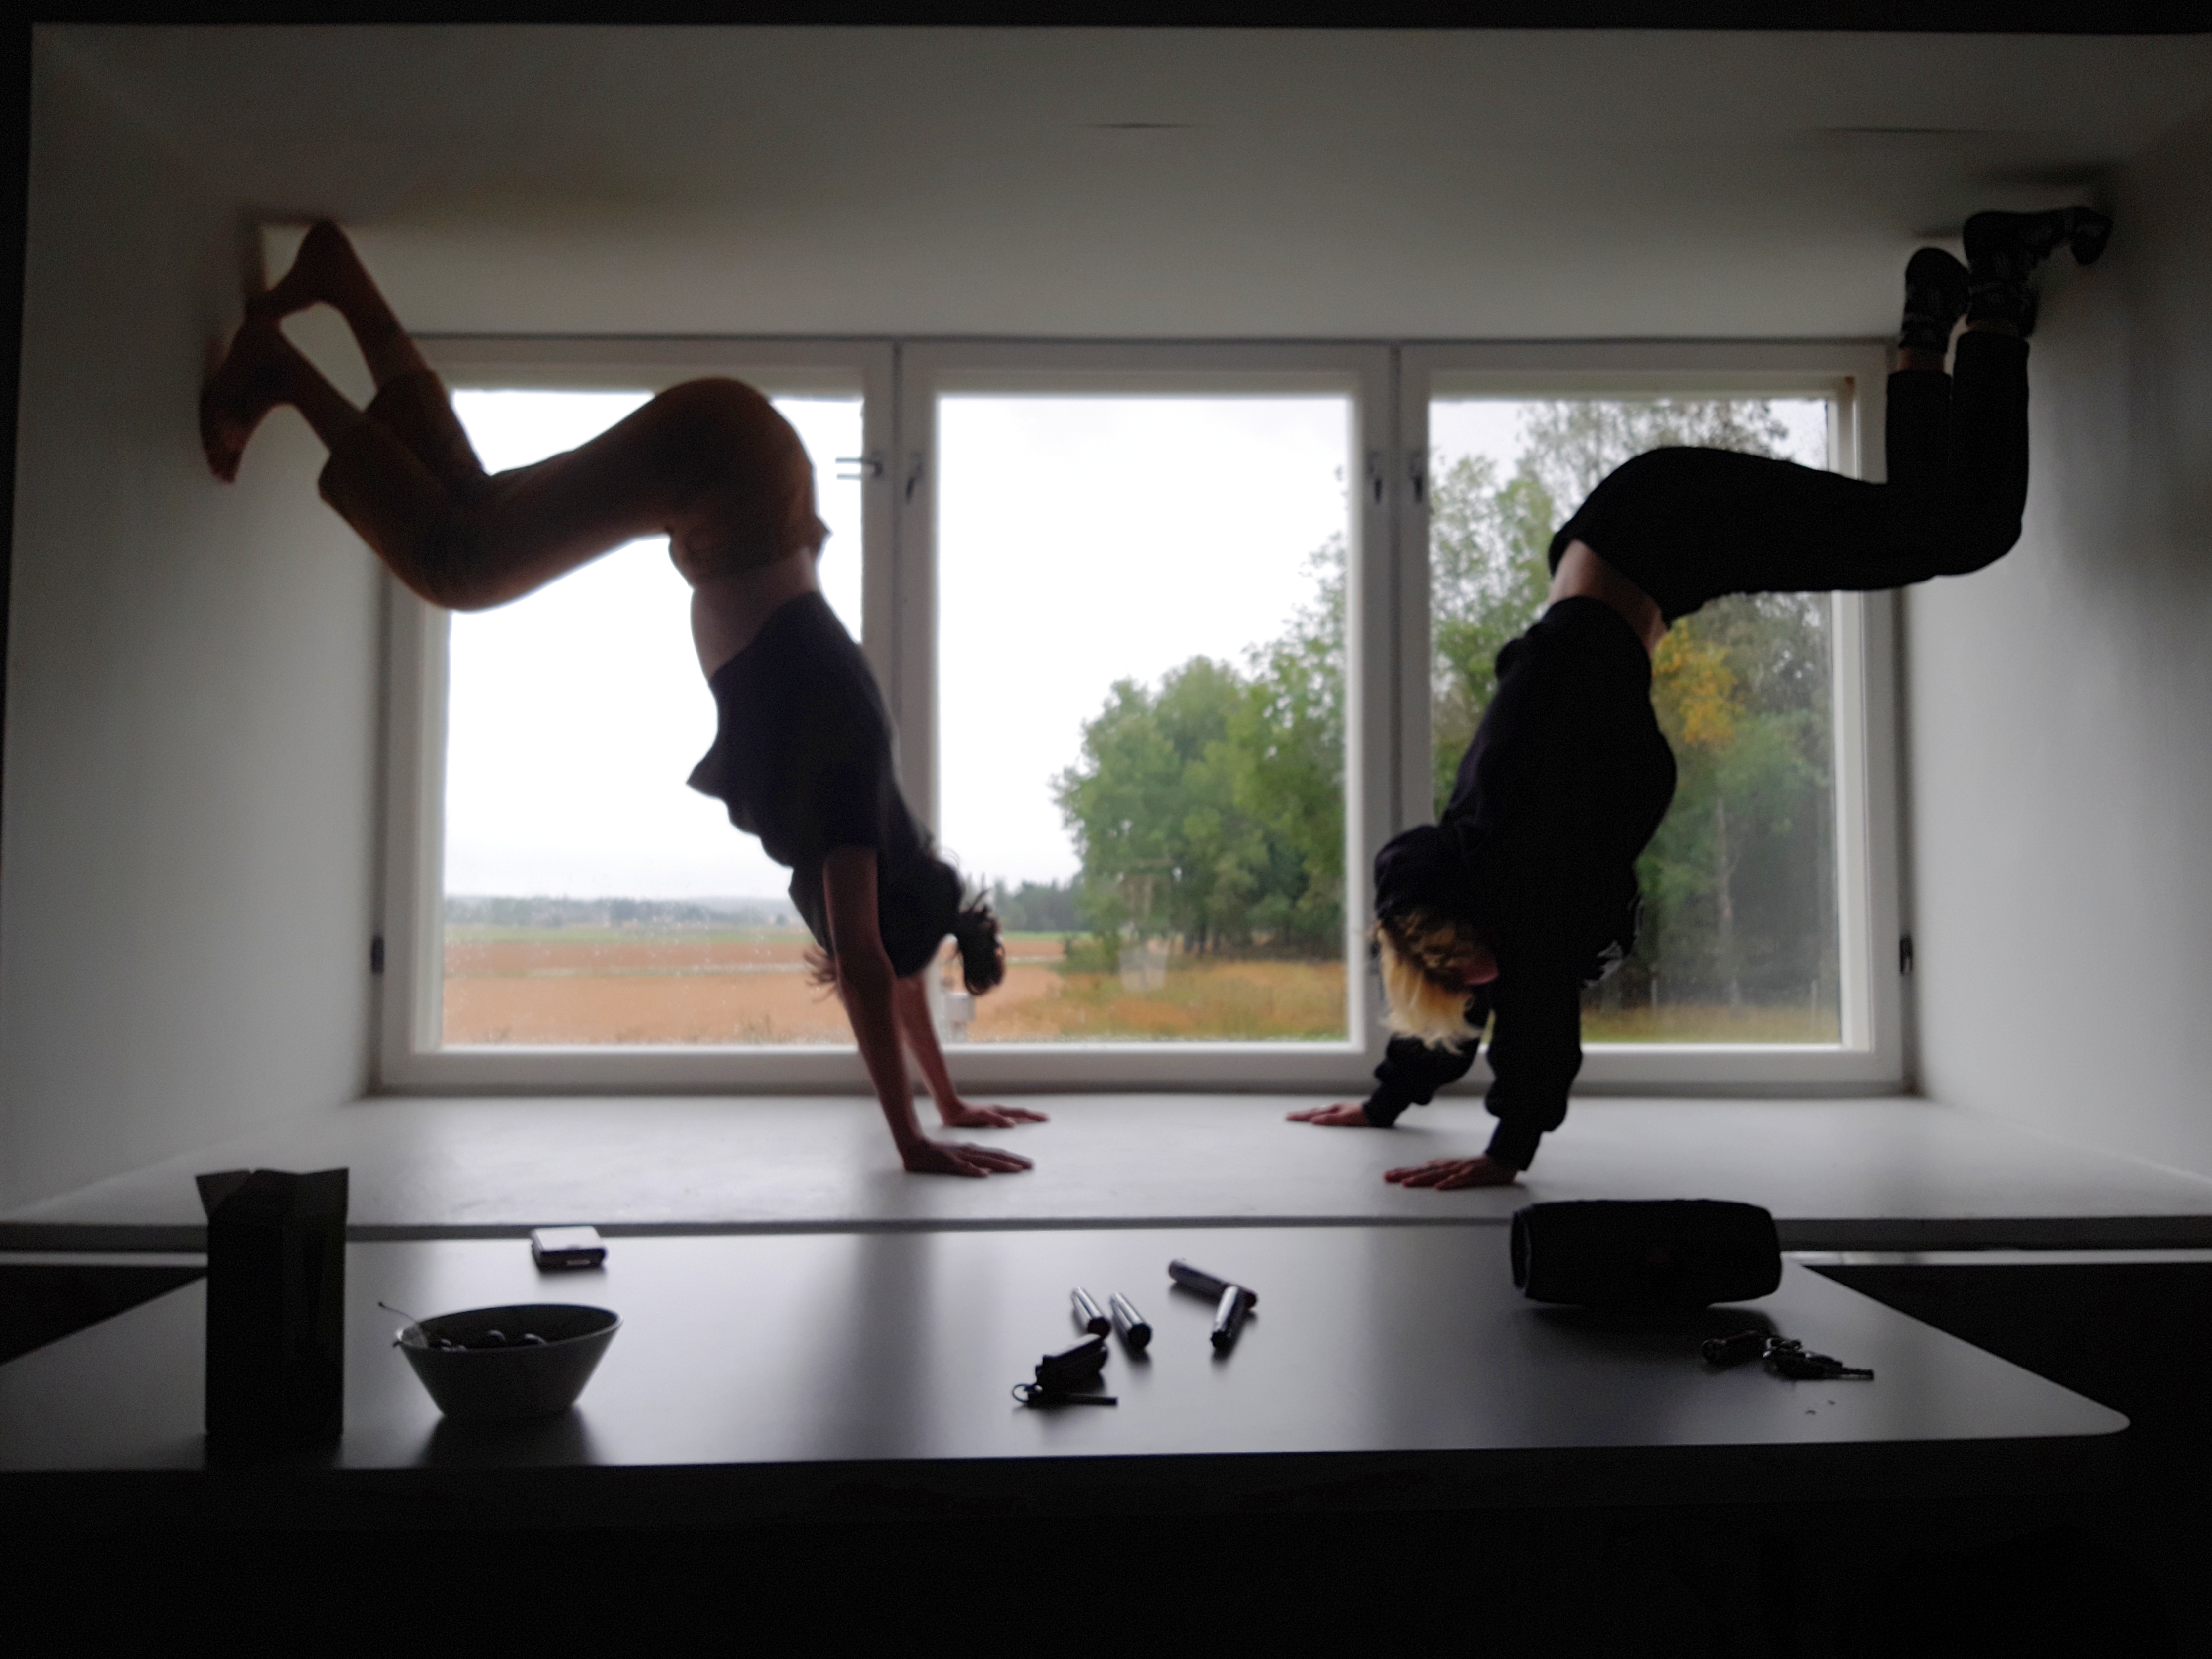 nynnyt stretching and attempting handstand on a table by the window